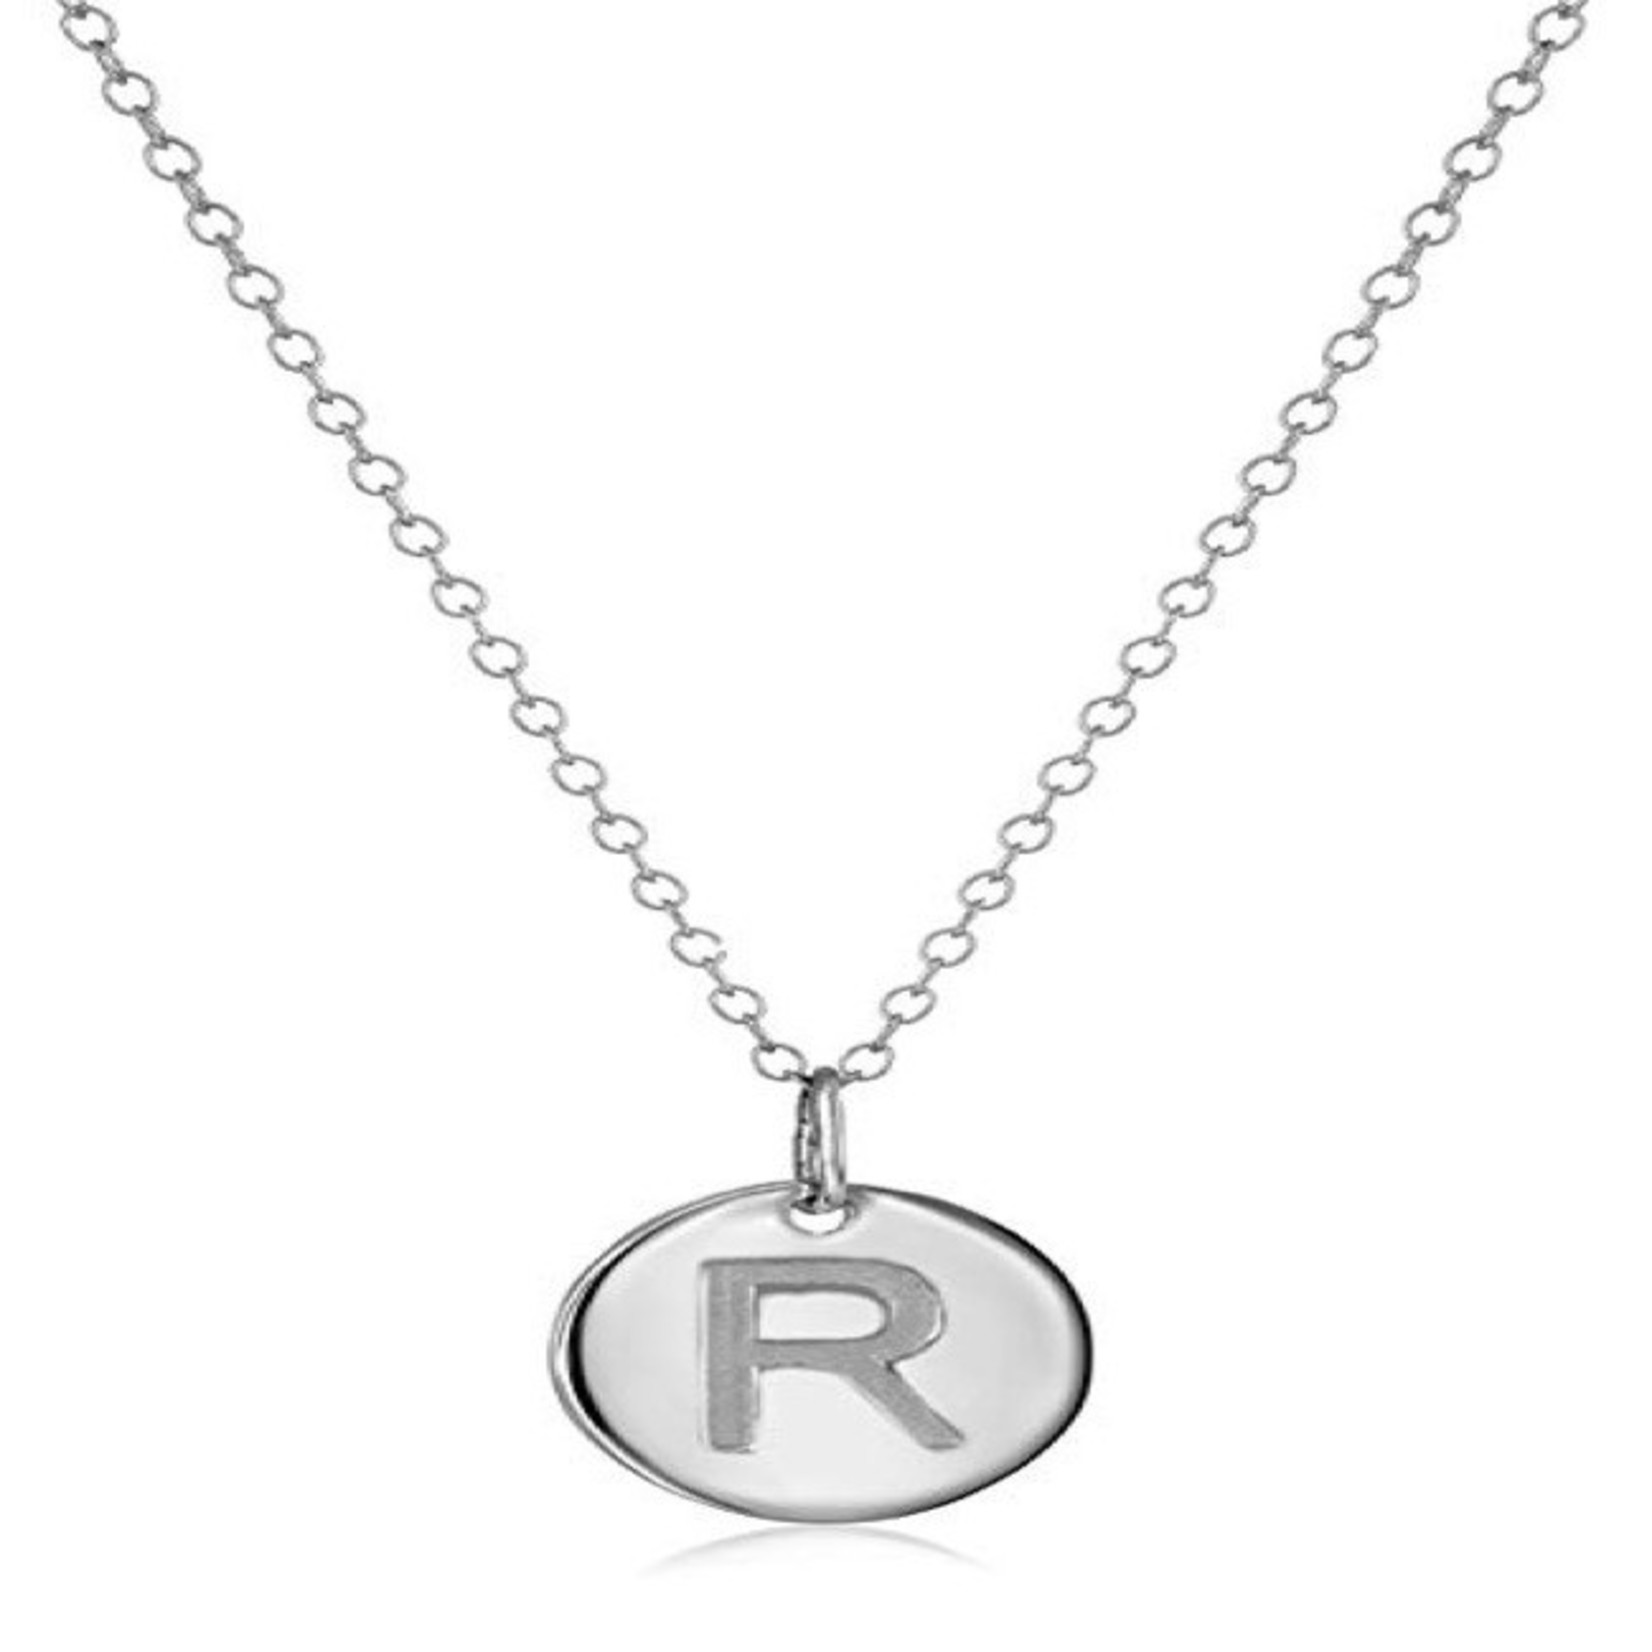 Necklace - Dainty Disc W/ Initial (Silver) (R)